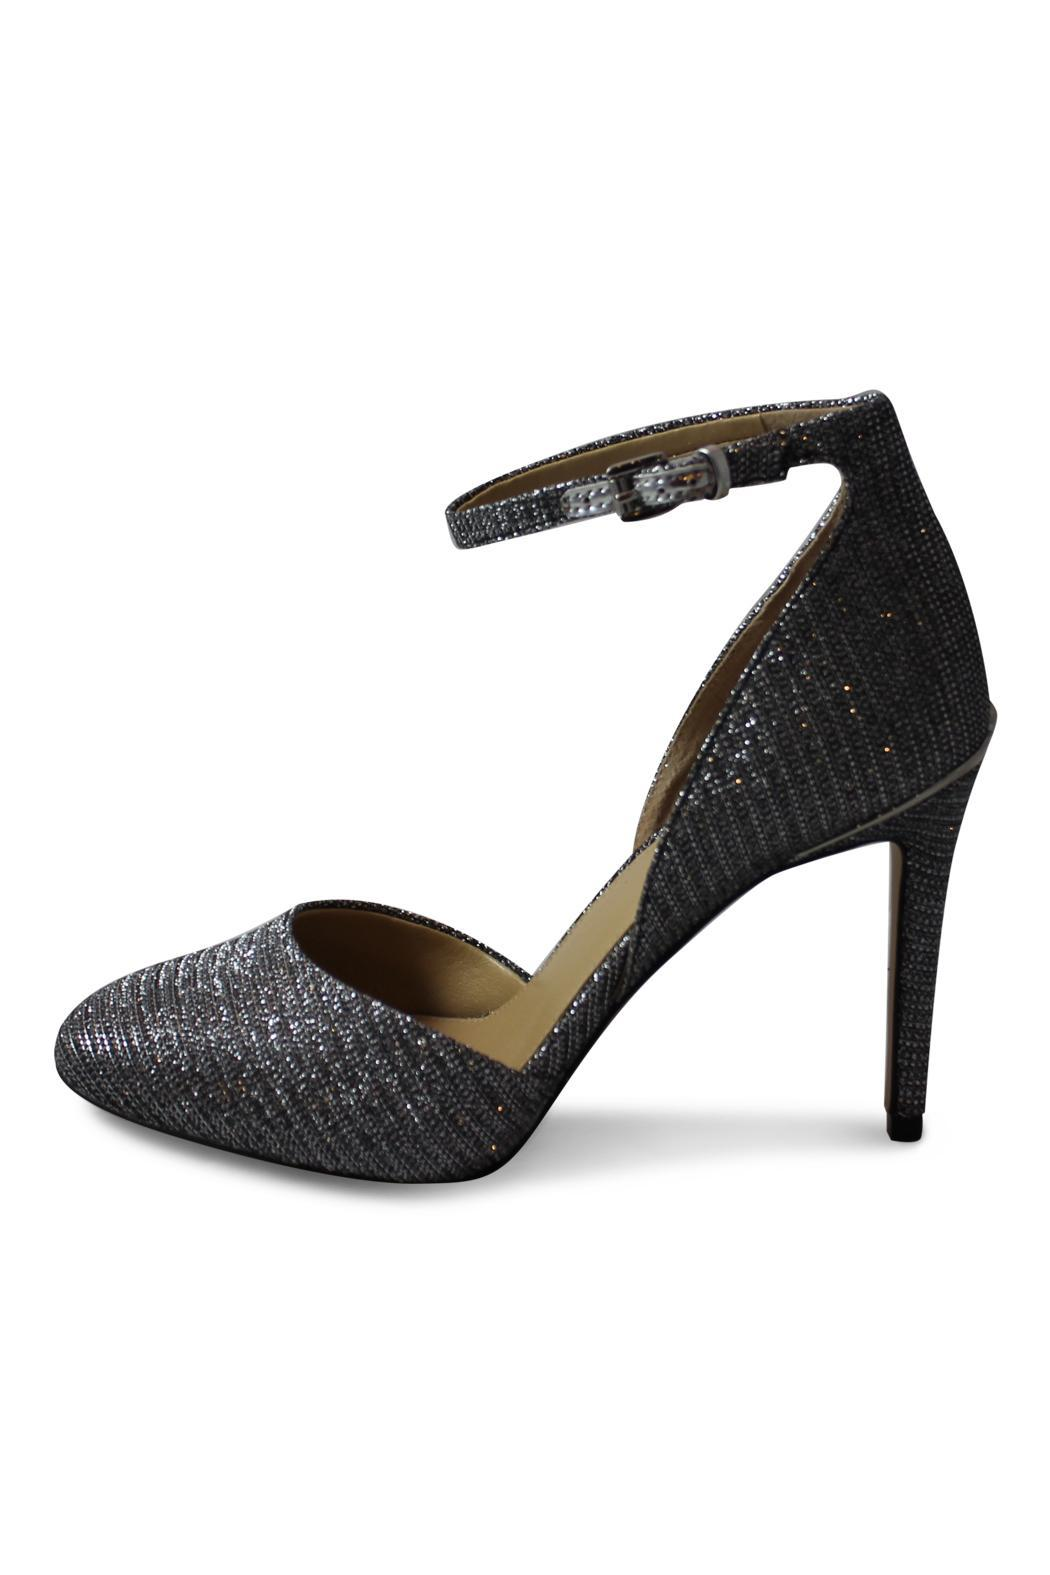 michael kors sparkle high heel from british columbia by big boot inn shoptiques. Black Bedroom Furniture Sets. Home Design Ideas